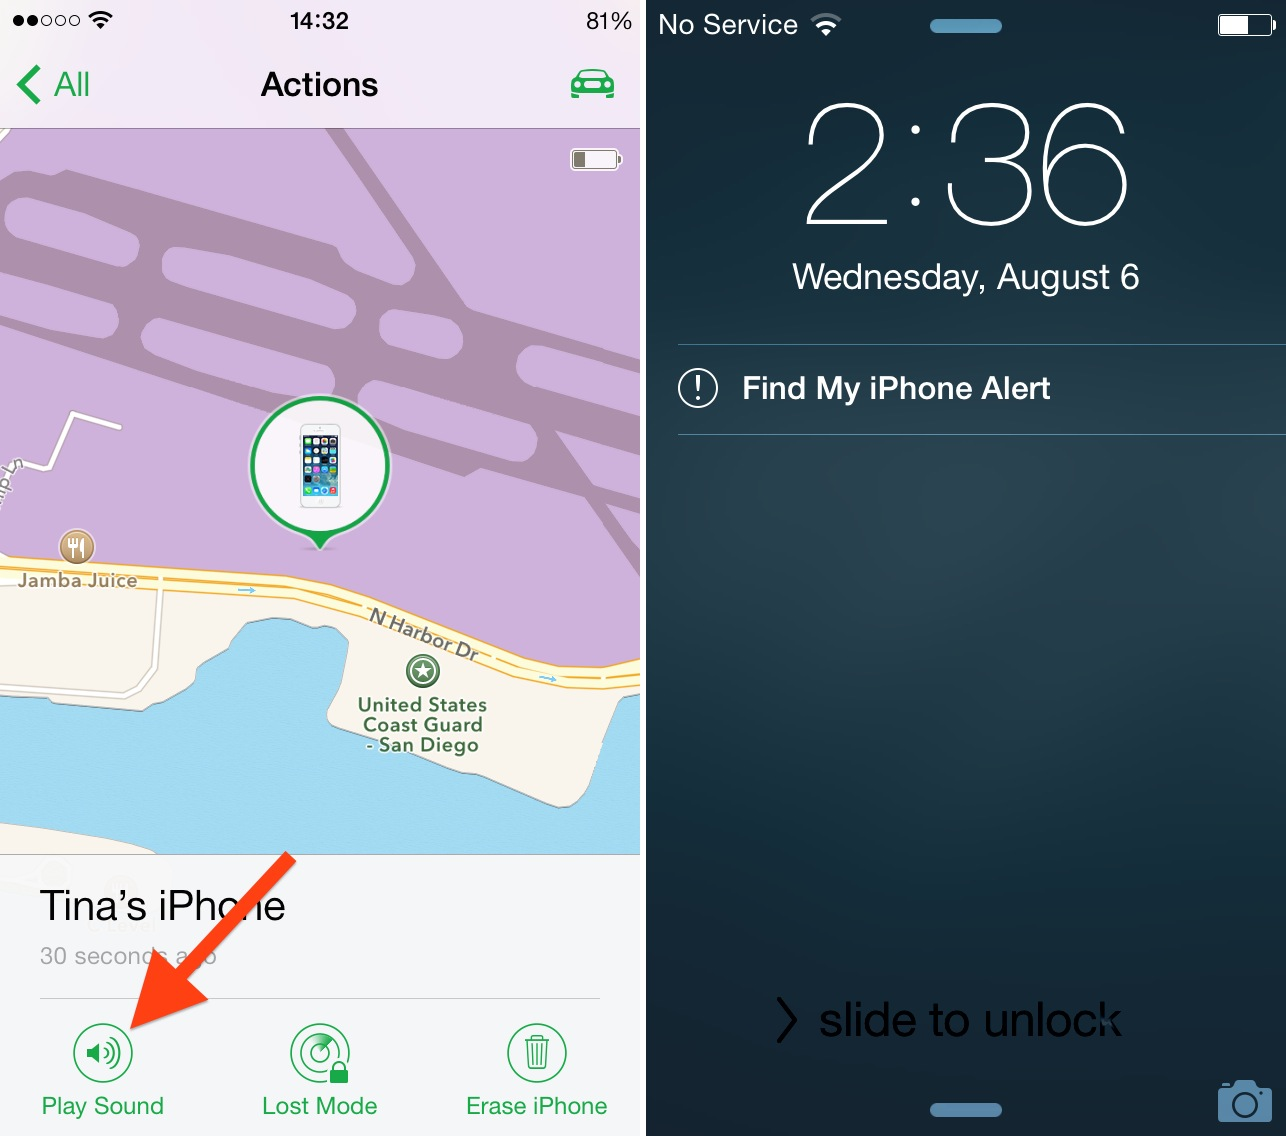 Find My iPhone Play Sound